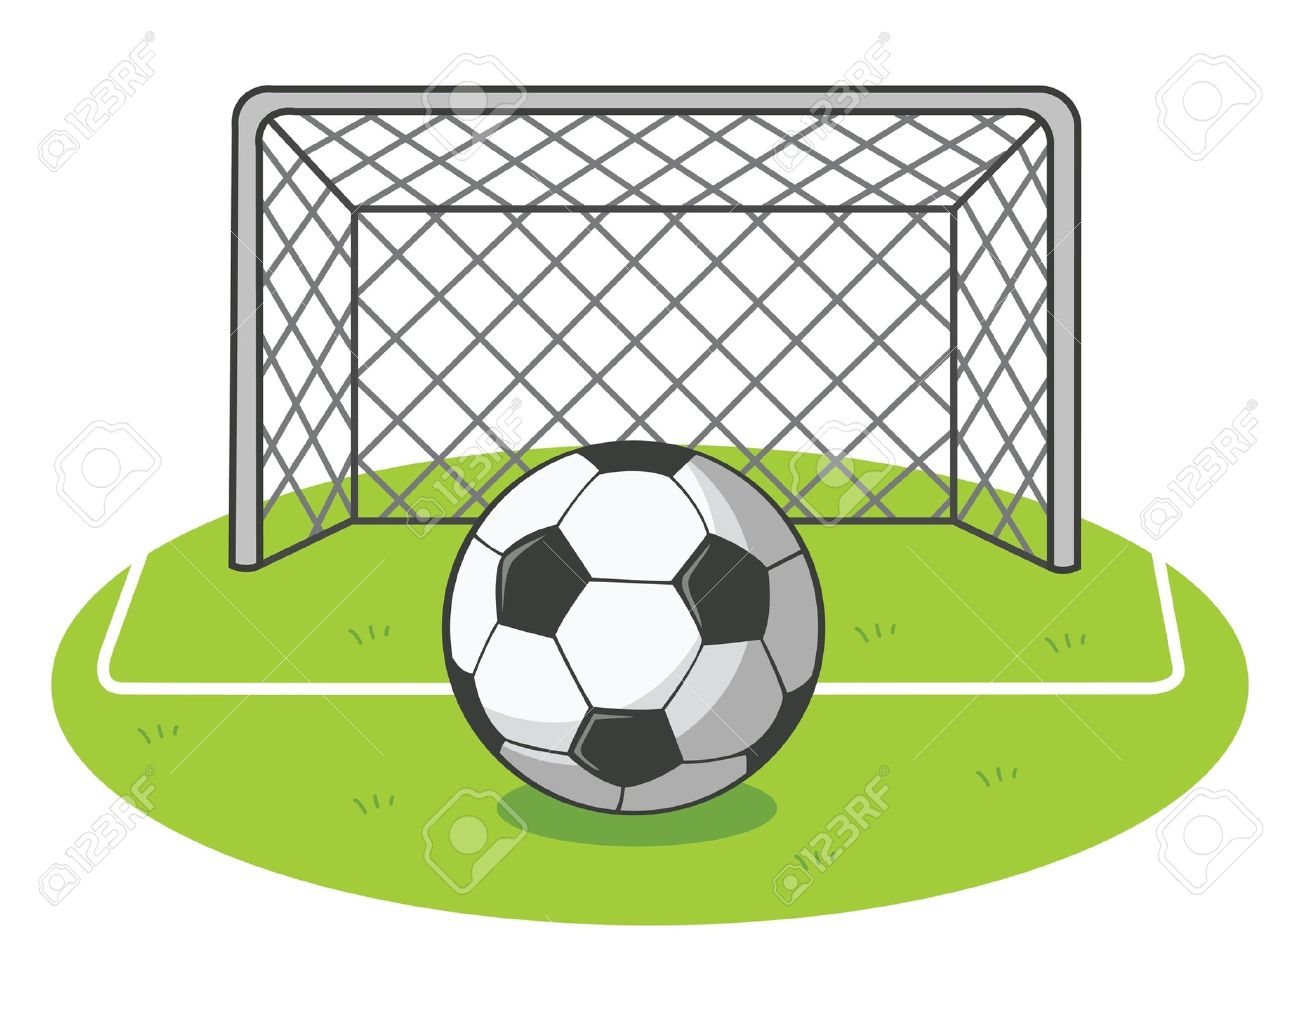 Soccer goal post clipart graphic black and white download Field Goal Clipart | Free download best Field Goal Clipart ... graphic black and white download